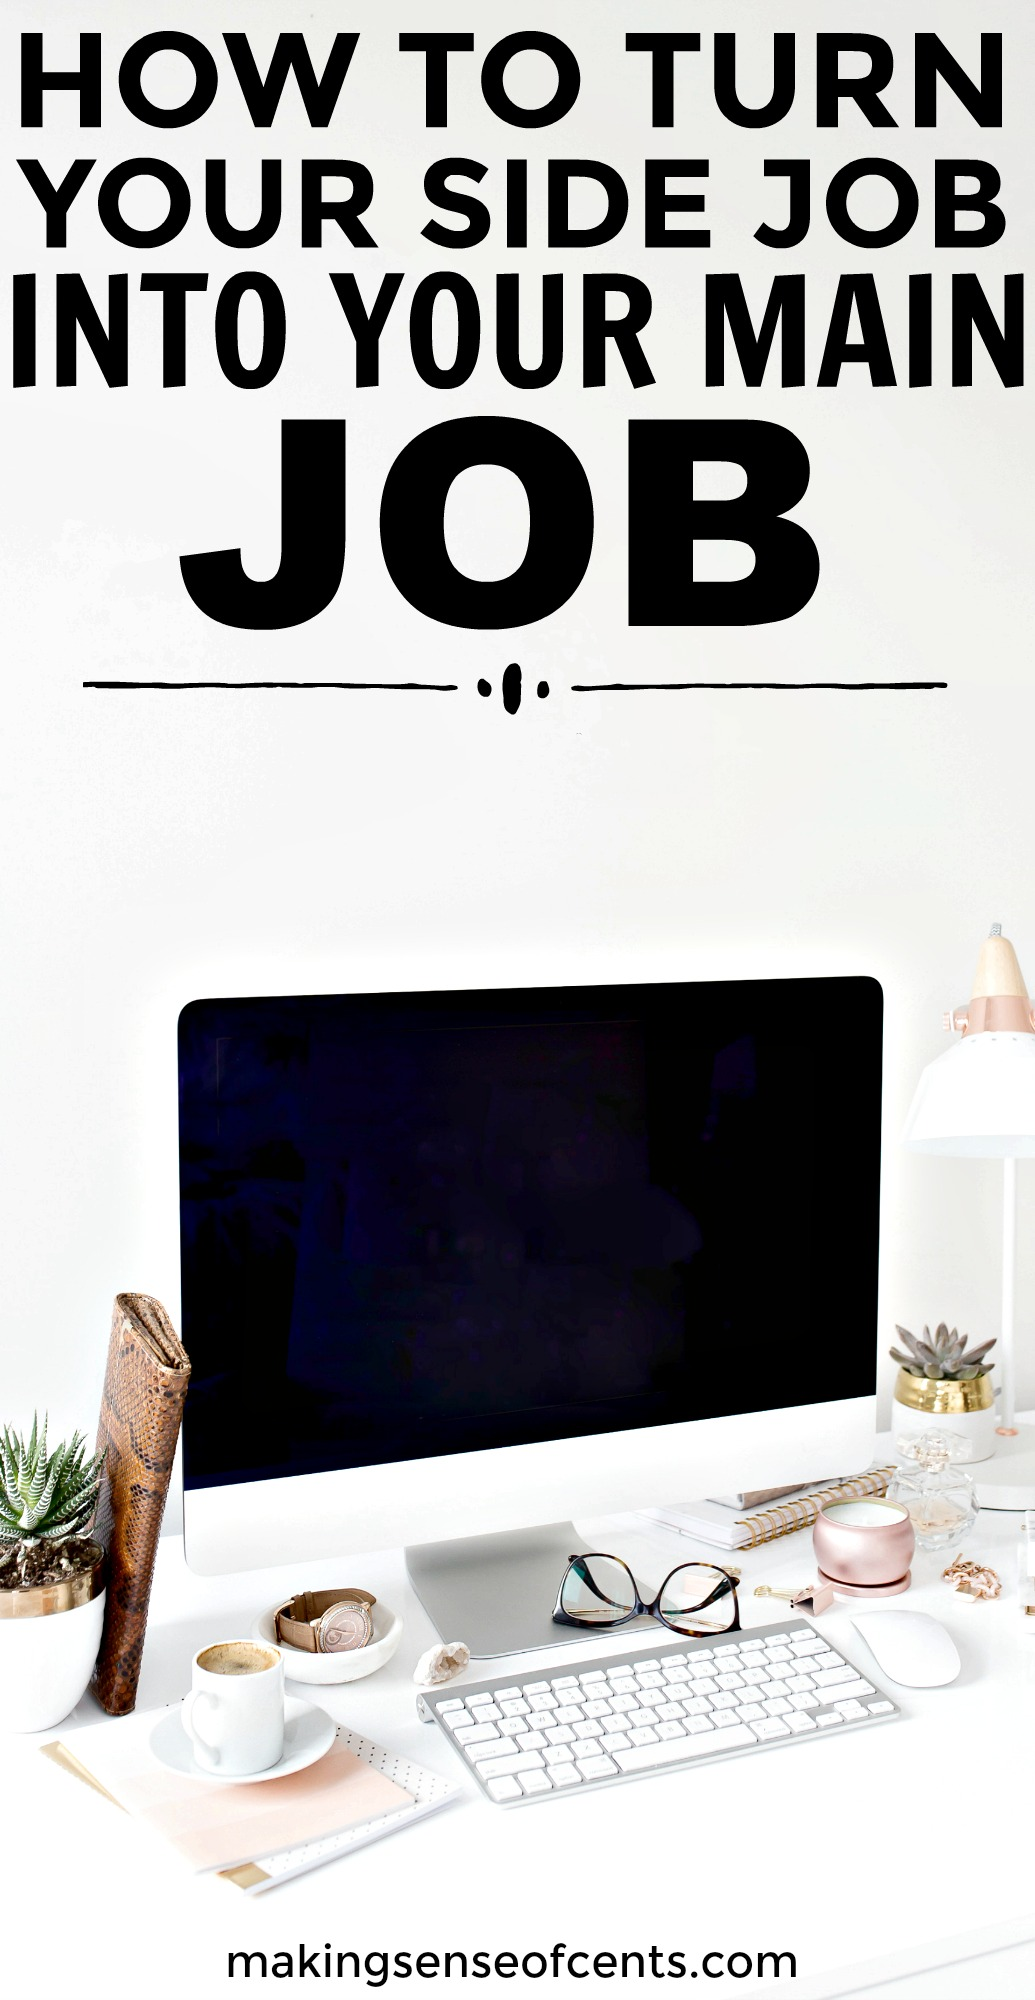 Find out how to turn your side job into your main job with this helpful post!